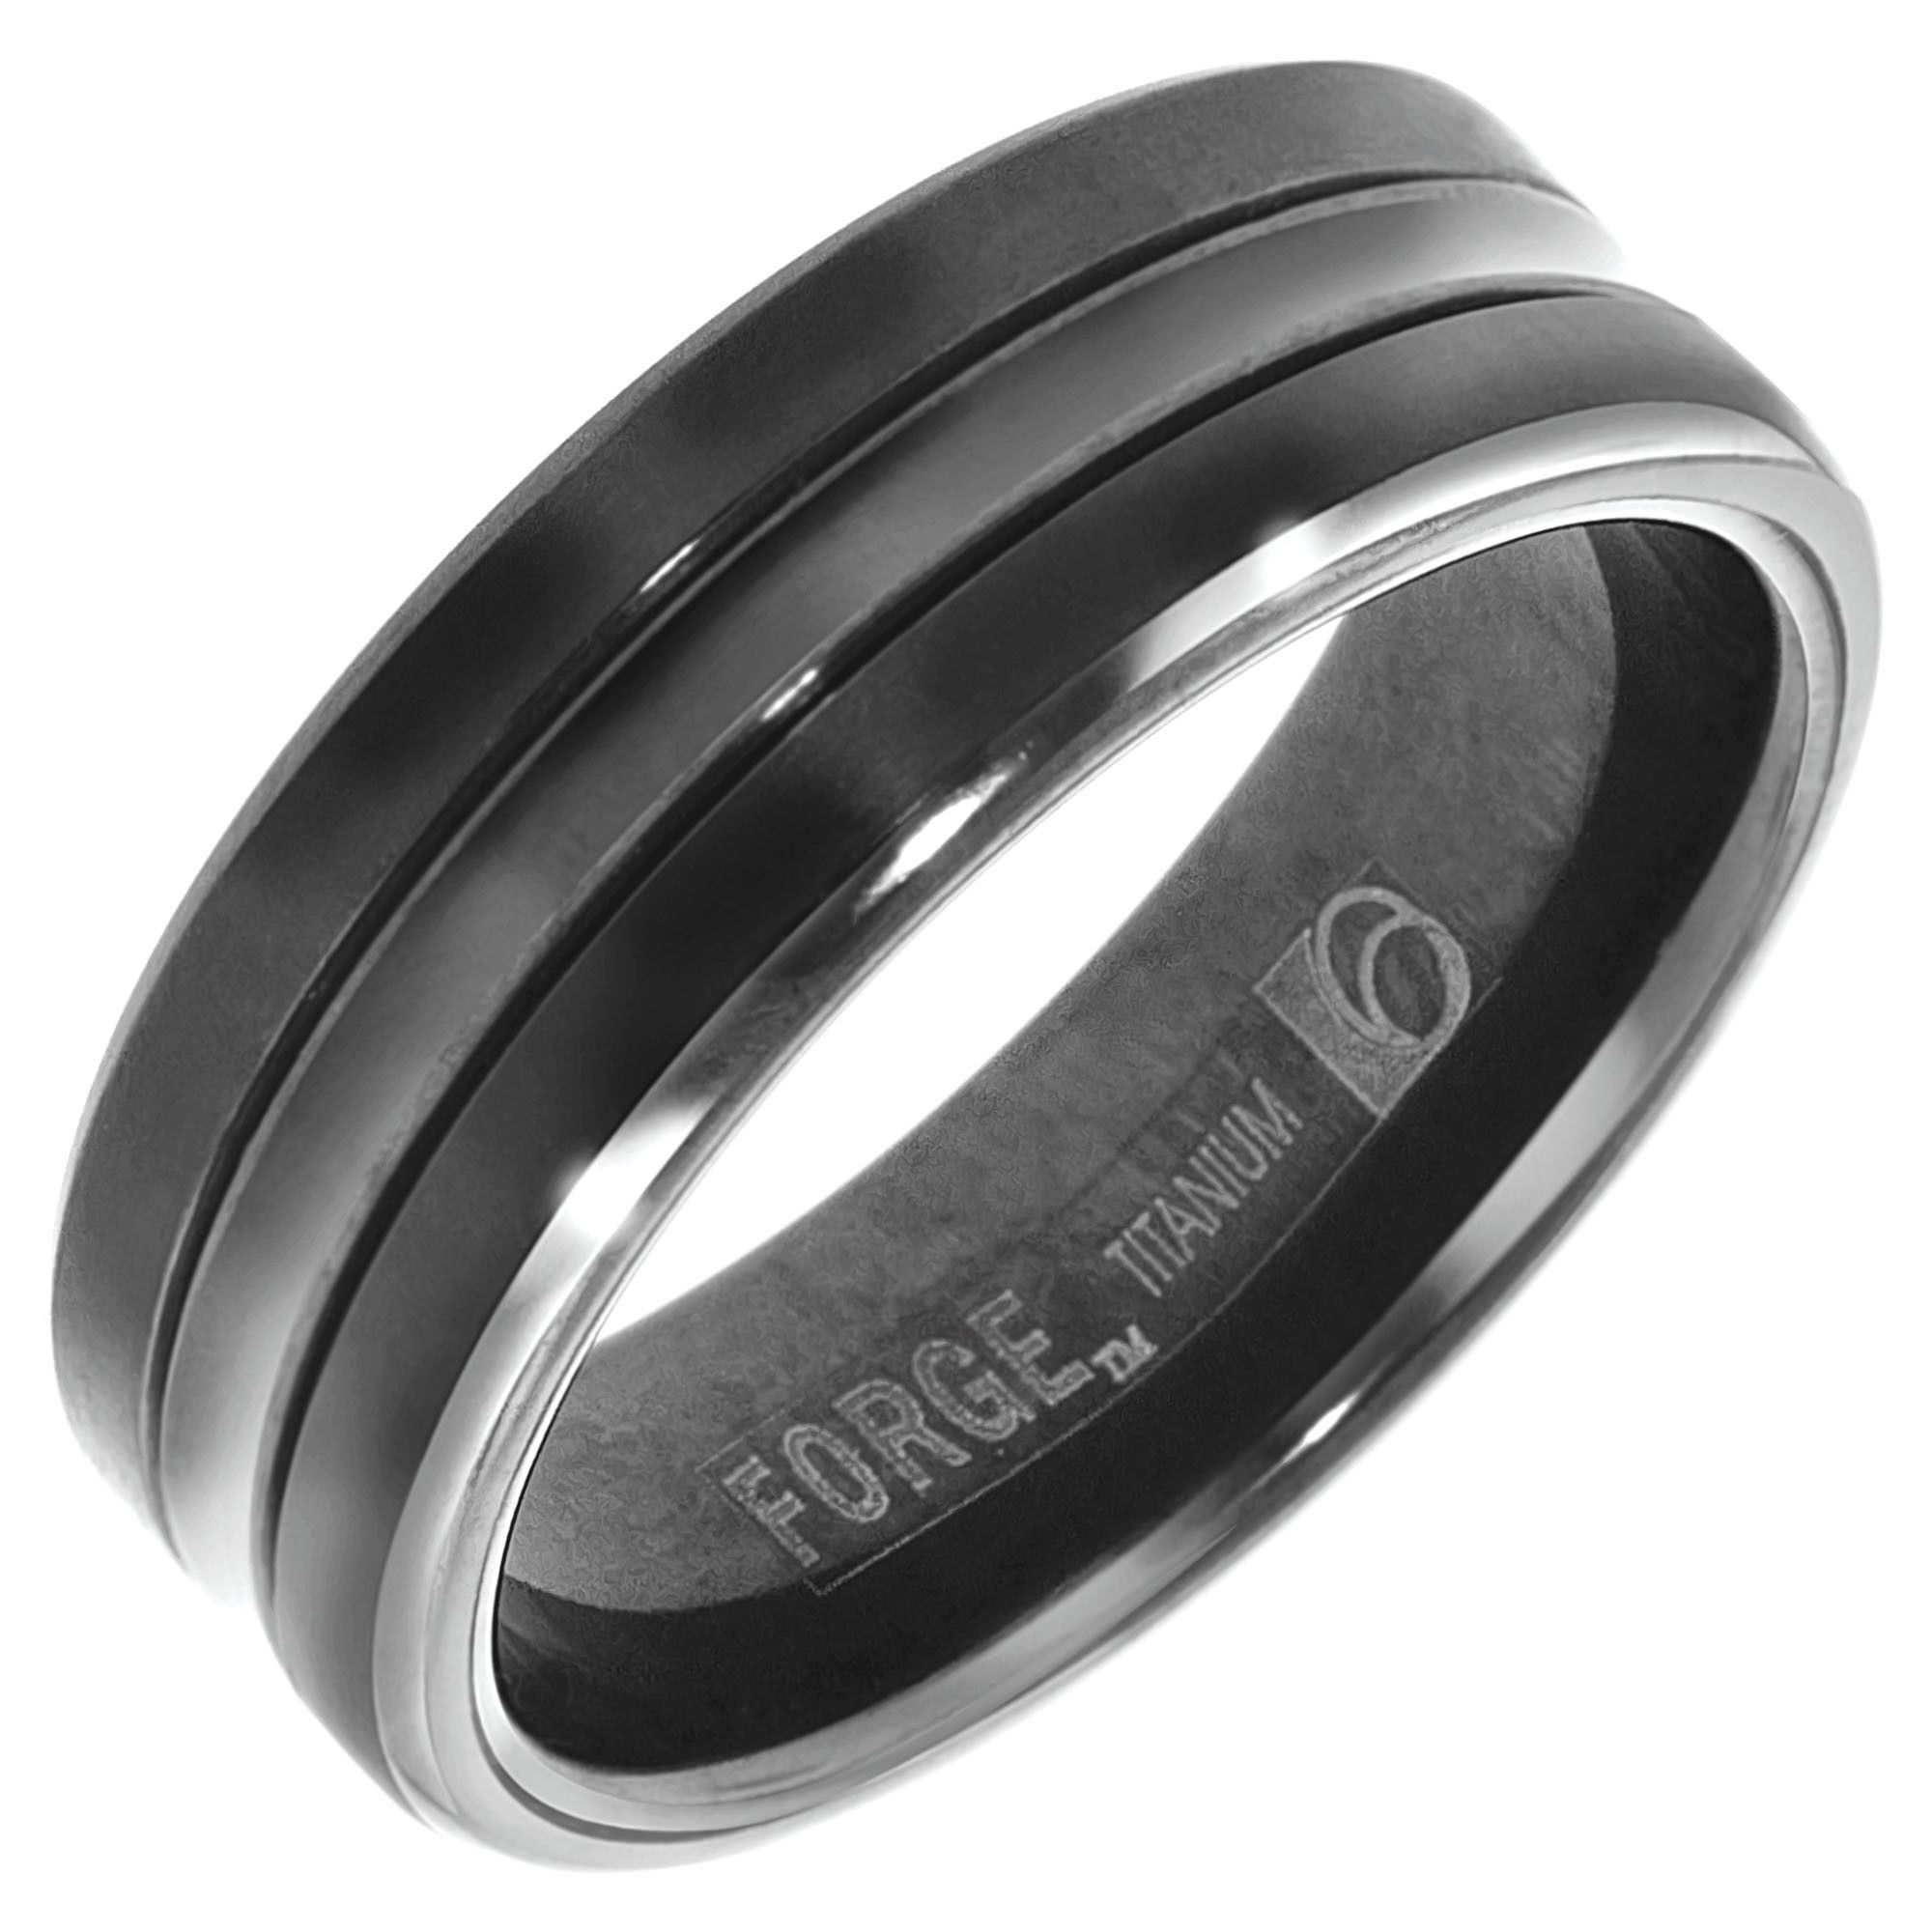 benchmark mens wedding band in black titanium (7mm) | groovy